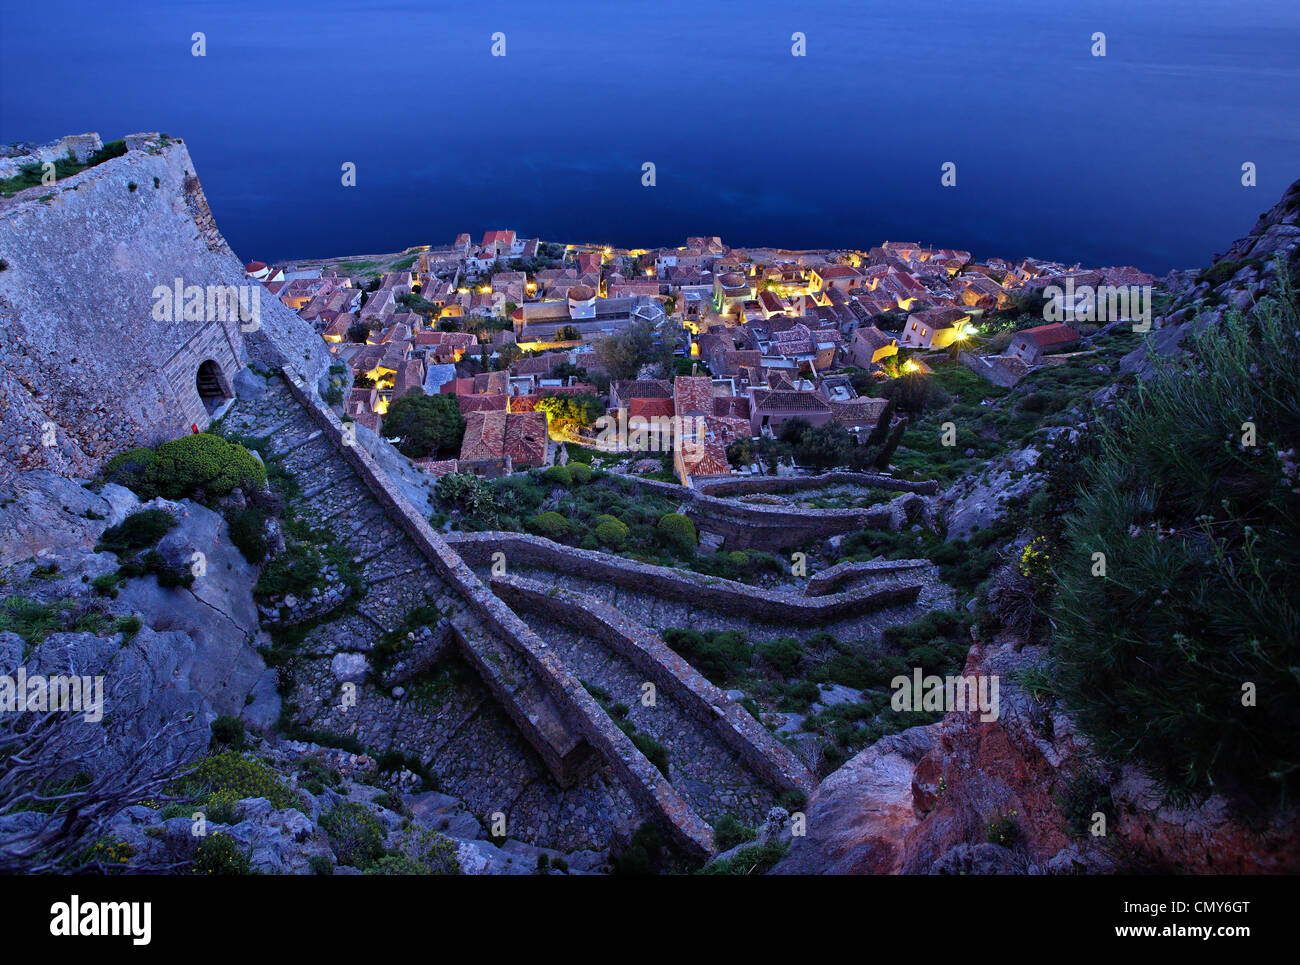 Night view of the 'Lower Castle' of the 'castletown' of Monemvasia. Photo taken from the 'Upper - Stock Image